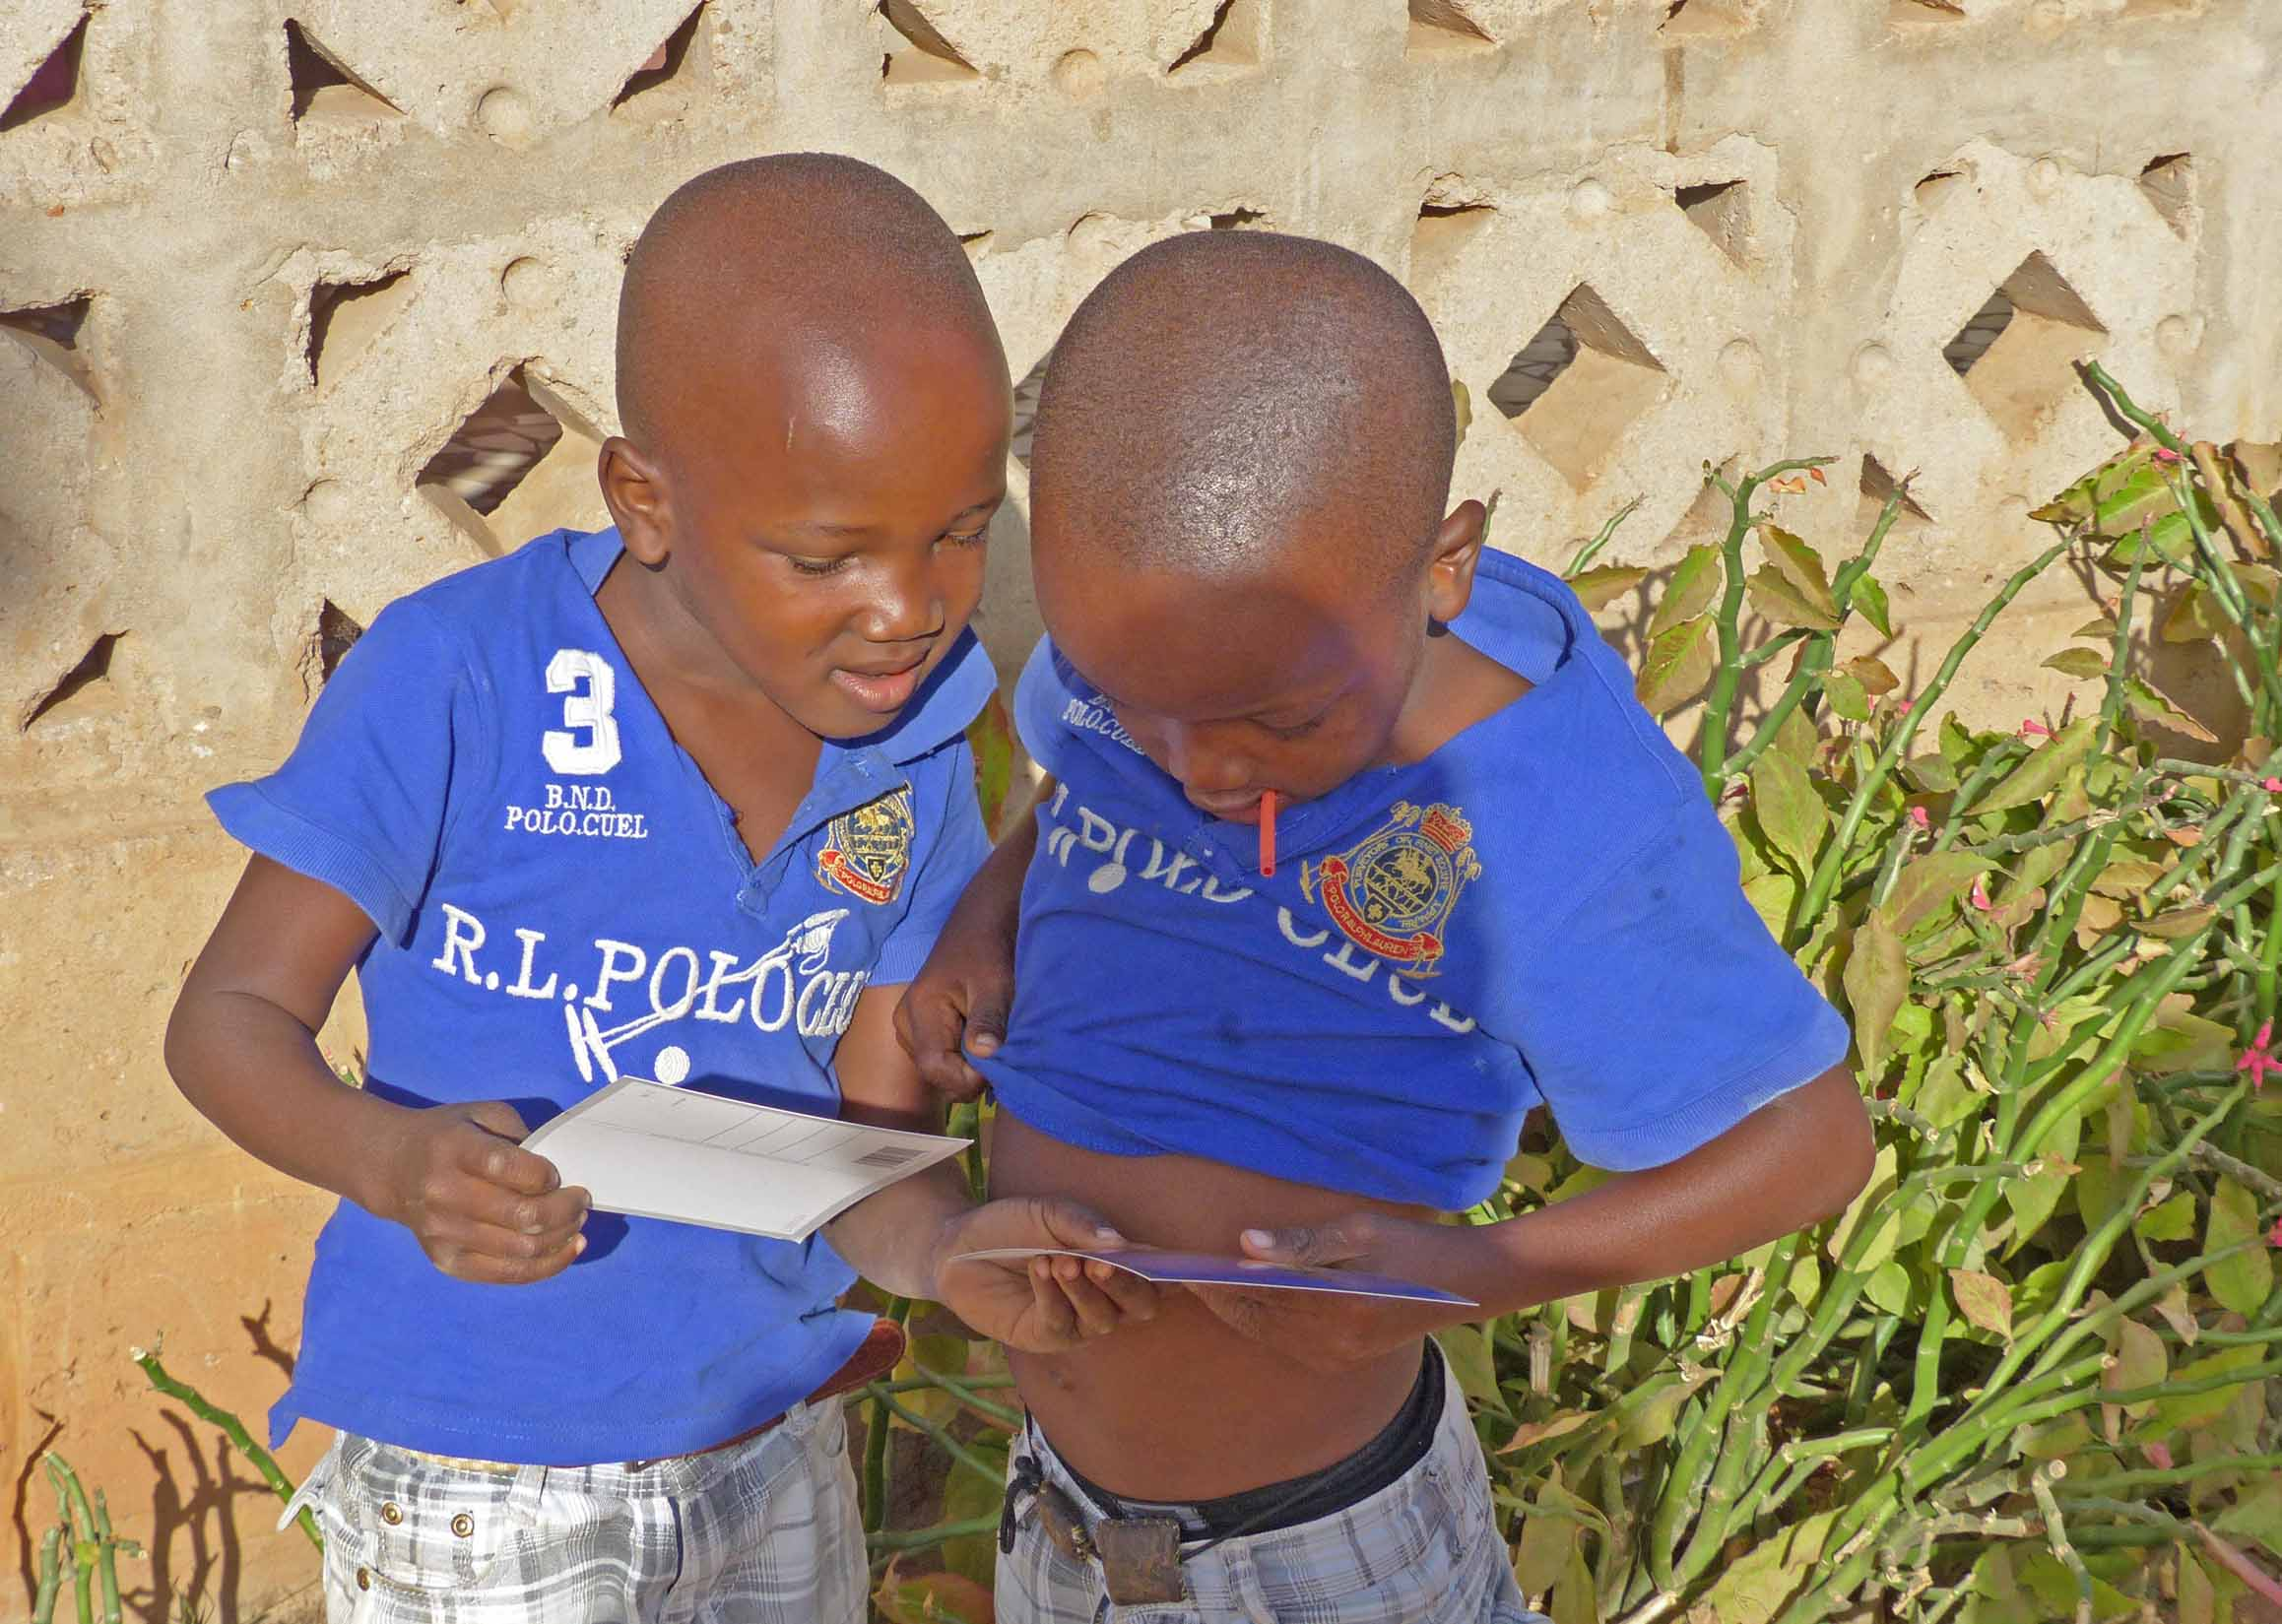 Two young boys in blue football tops